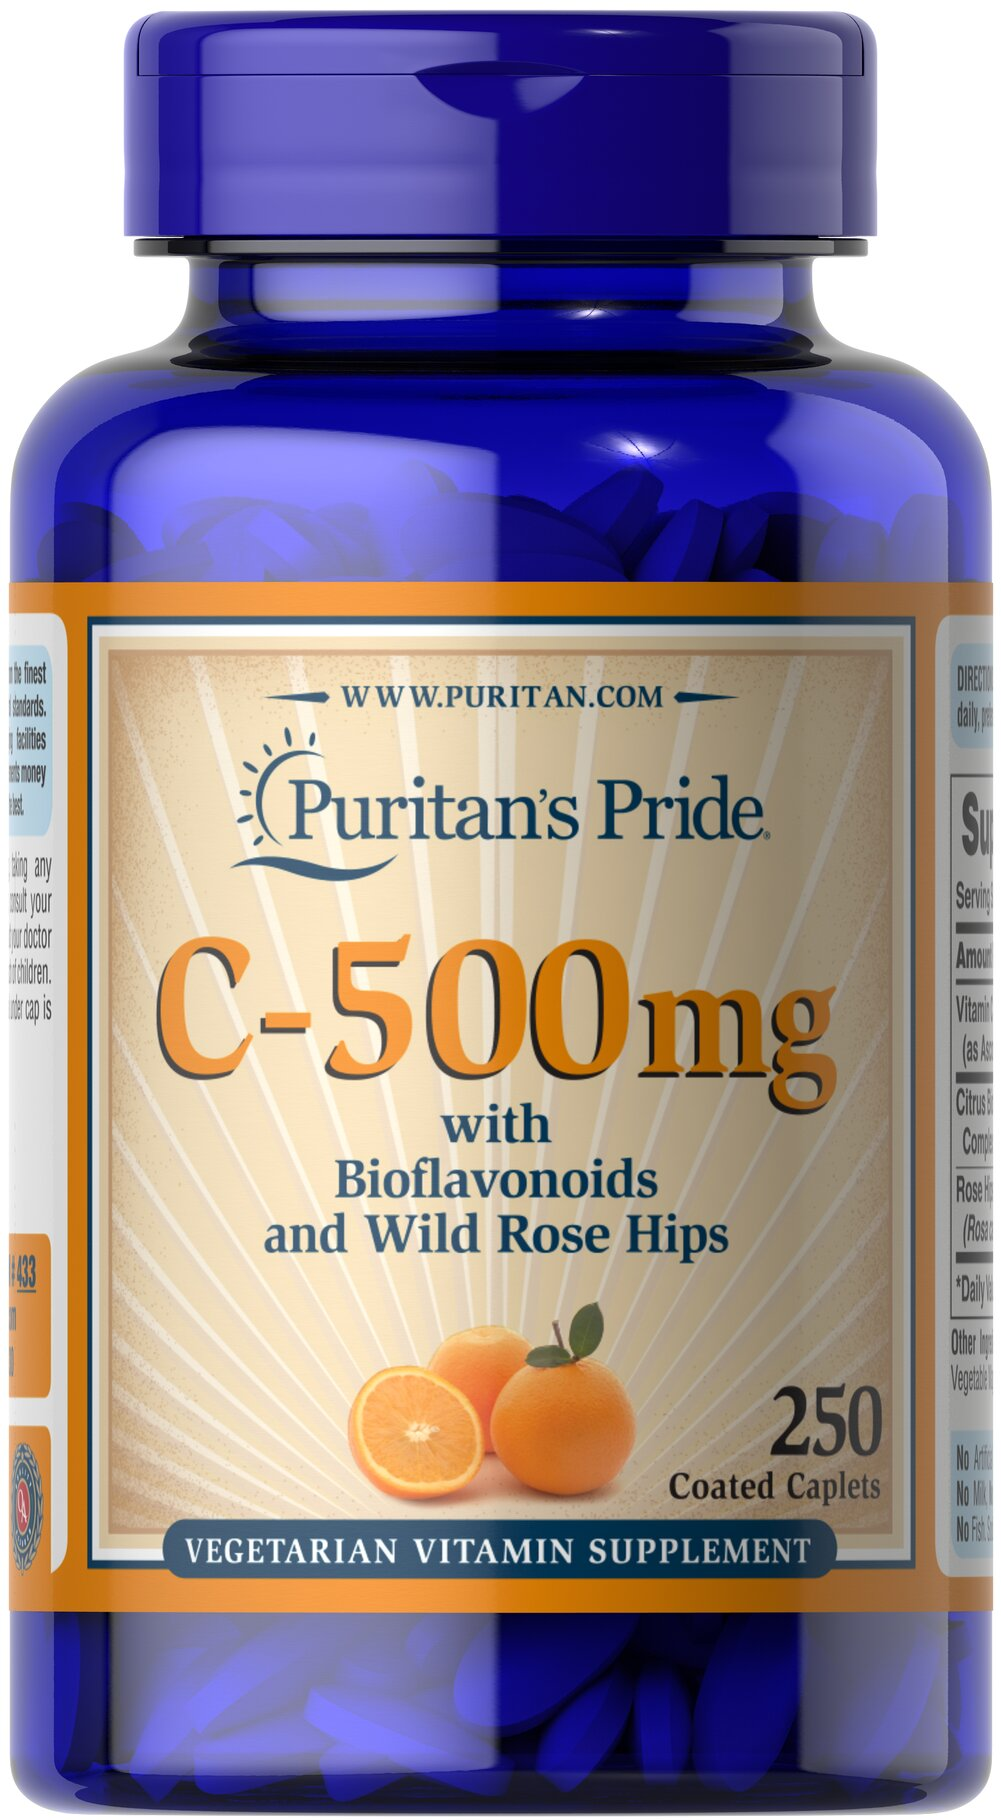 Vitamin C-500 mg with Bioflavonoids & Rose Hips Thumbnail Alternate Bottle View